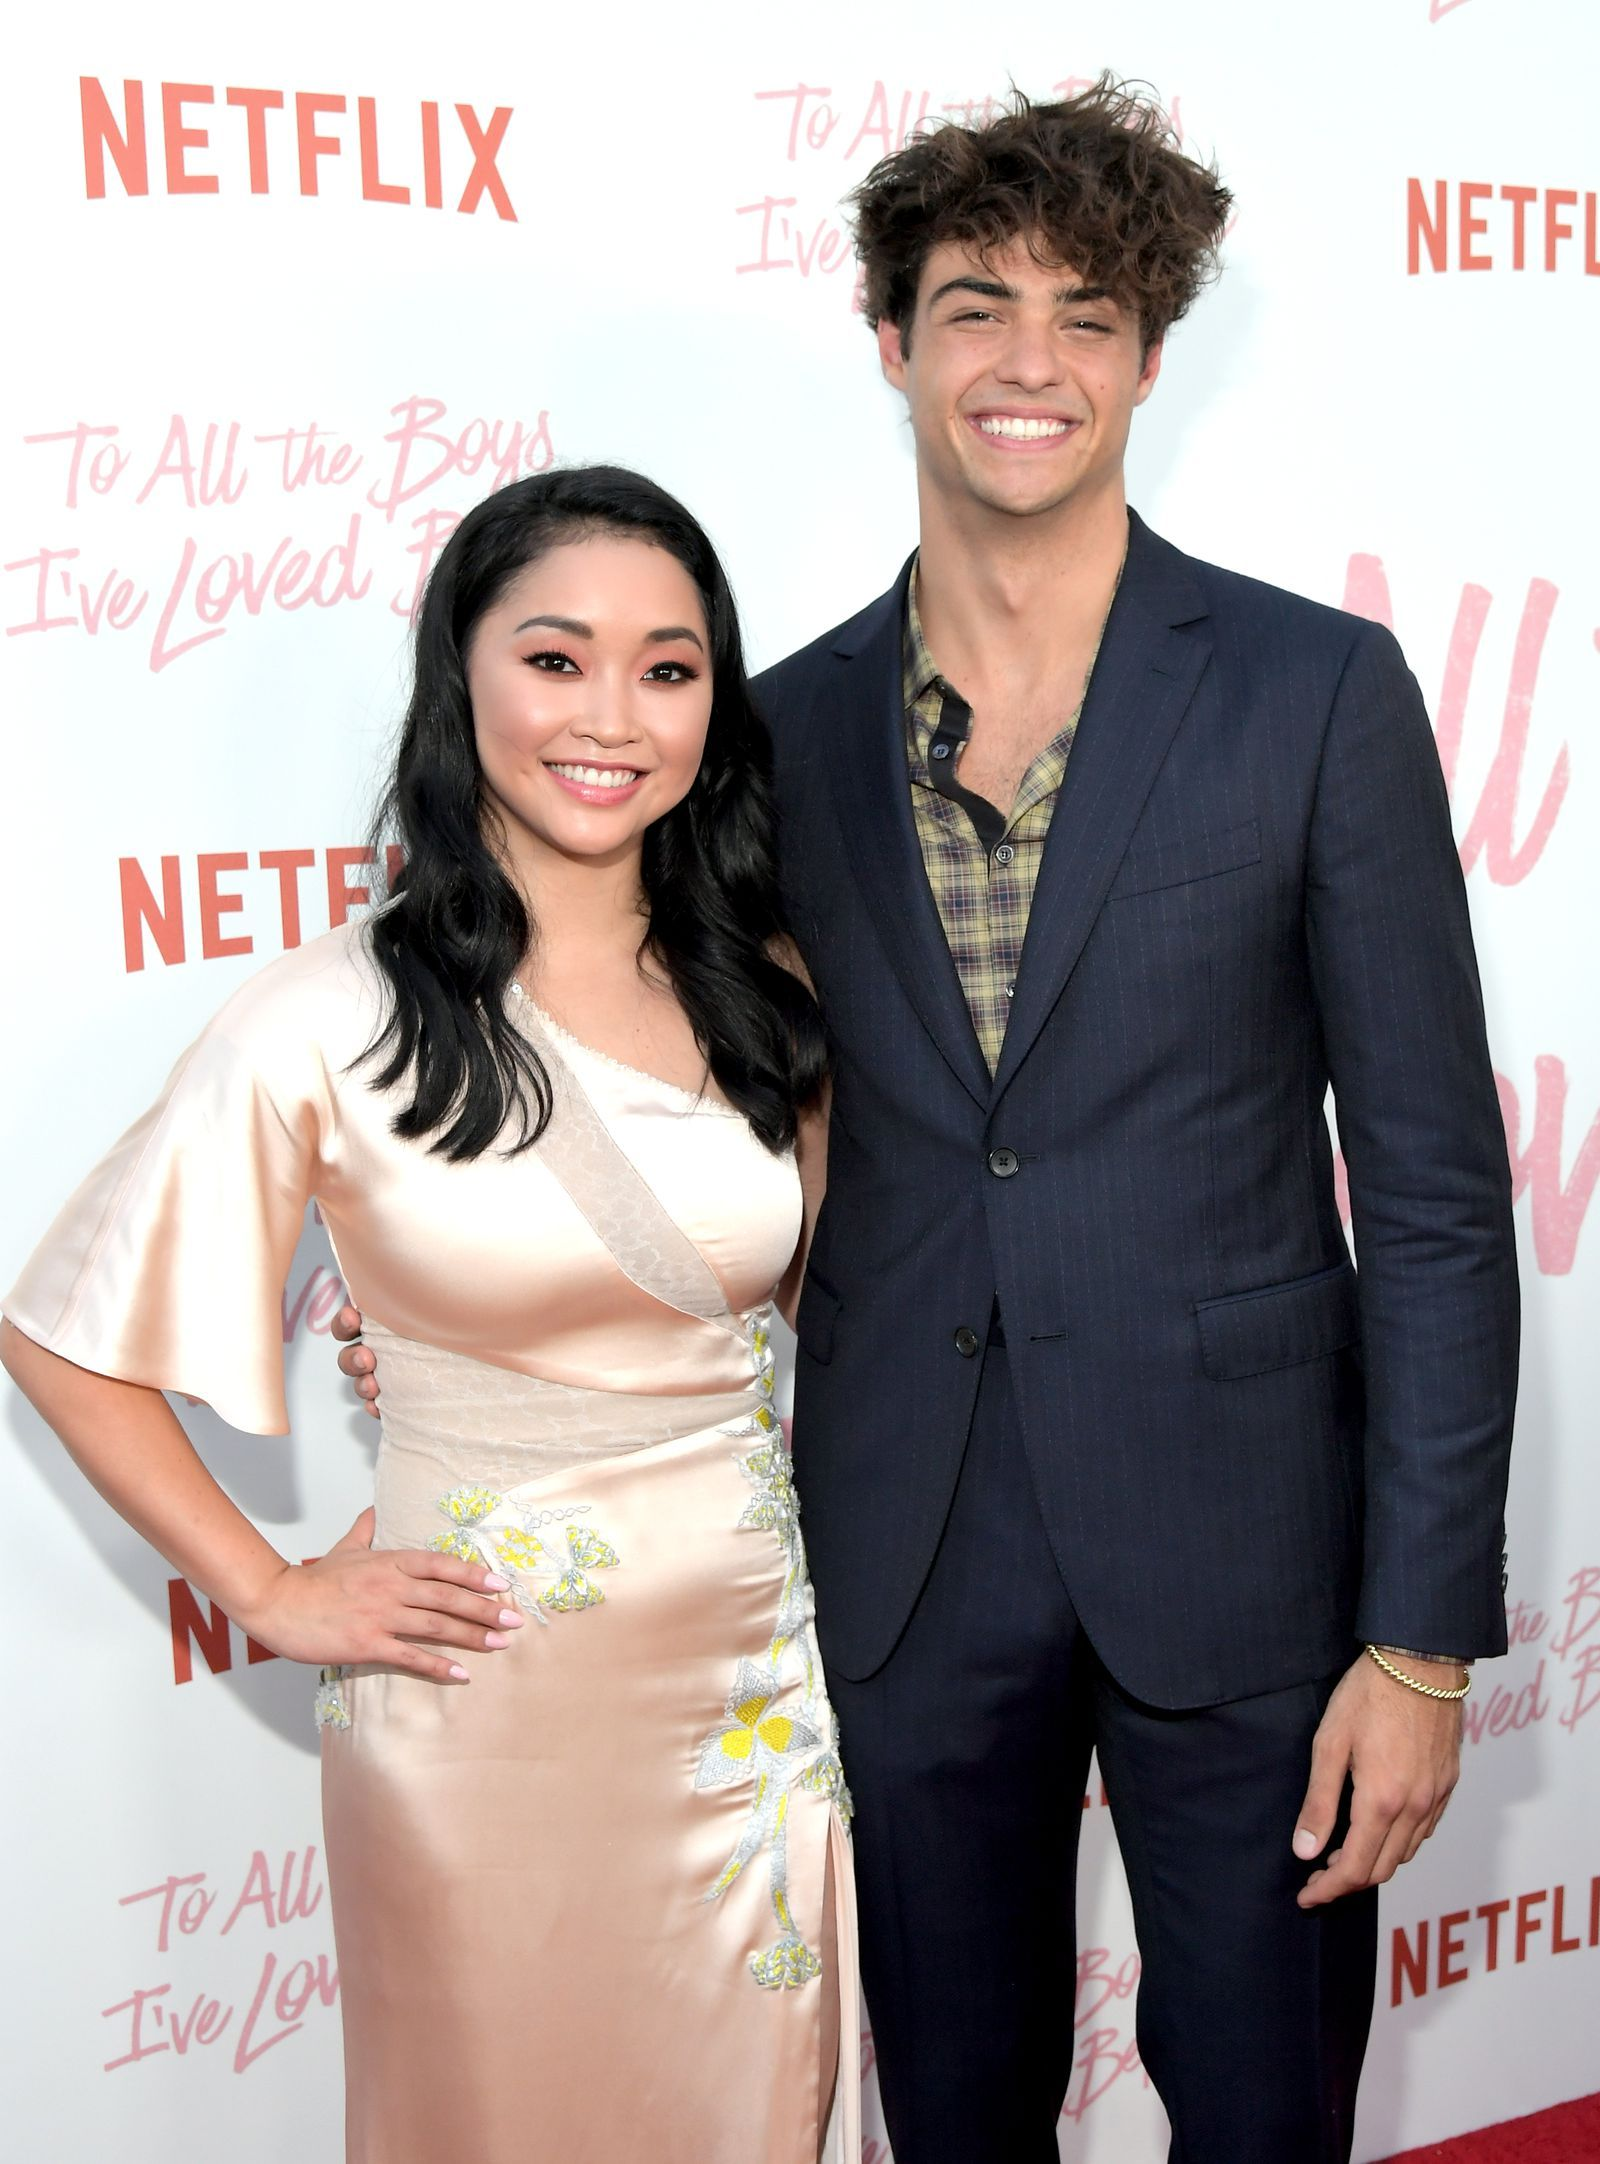 Noah Centineo Says His Relationship With Lana Condor Is Like